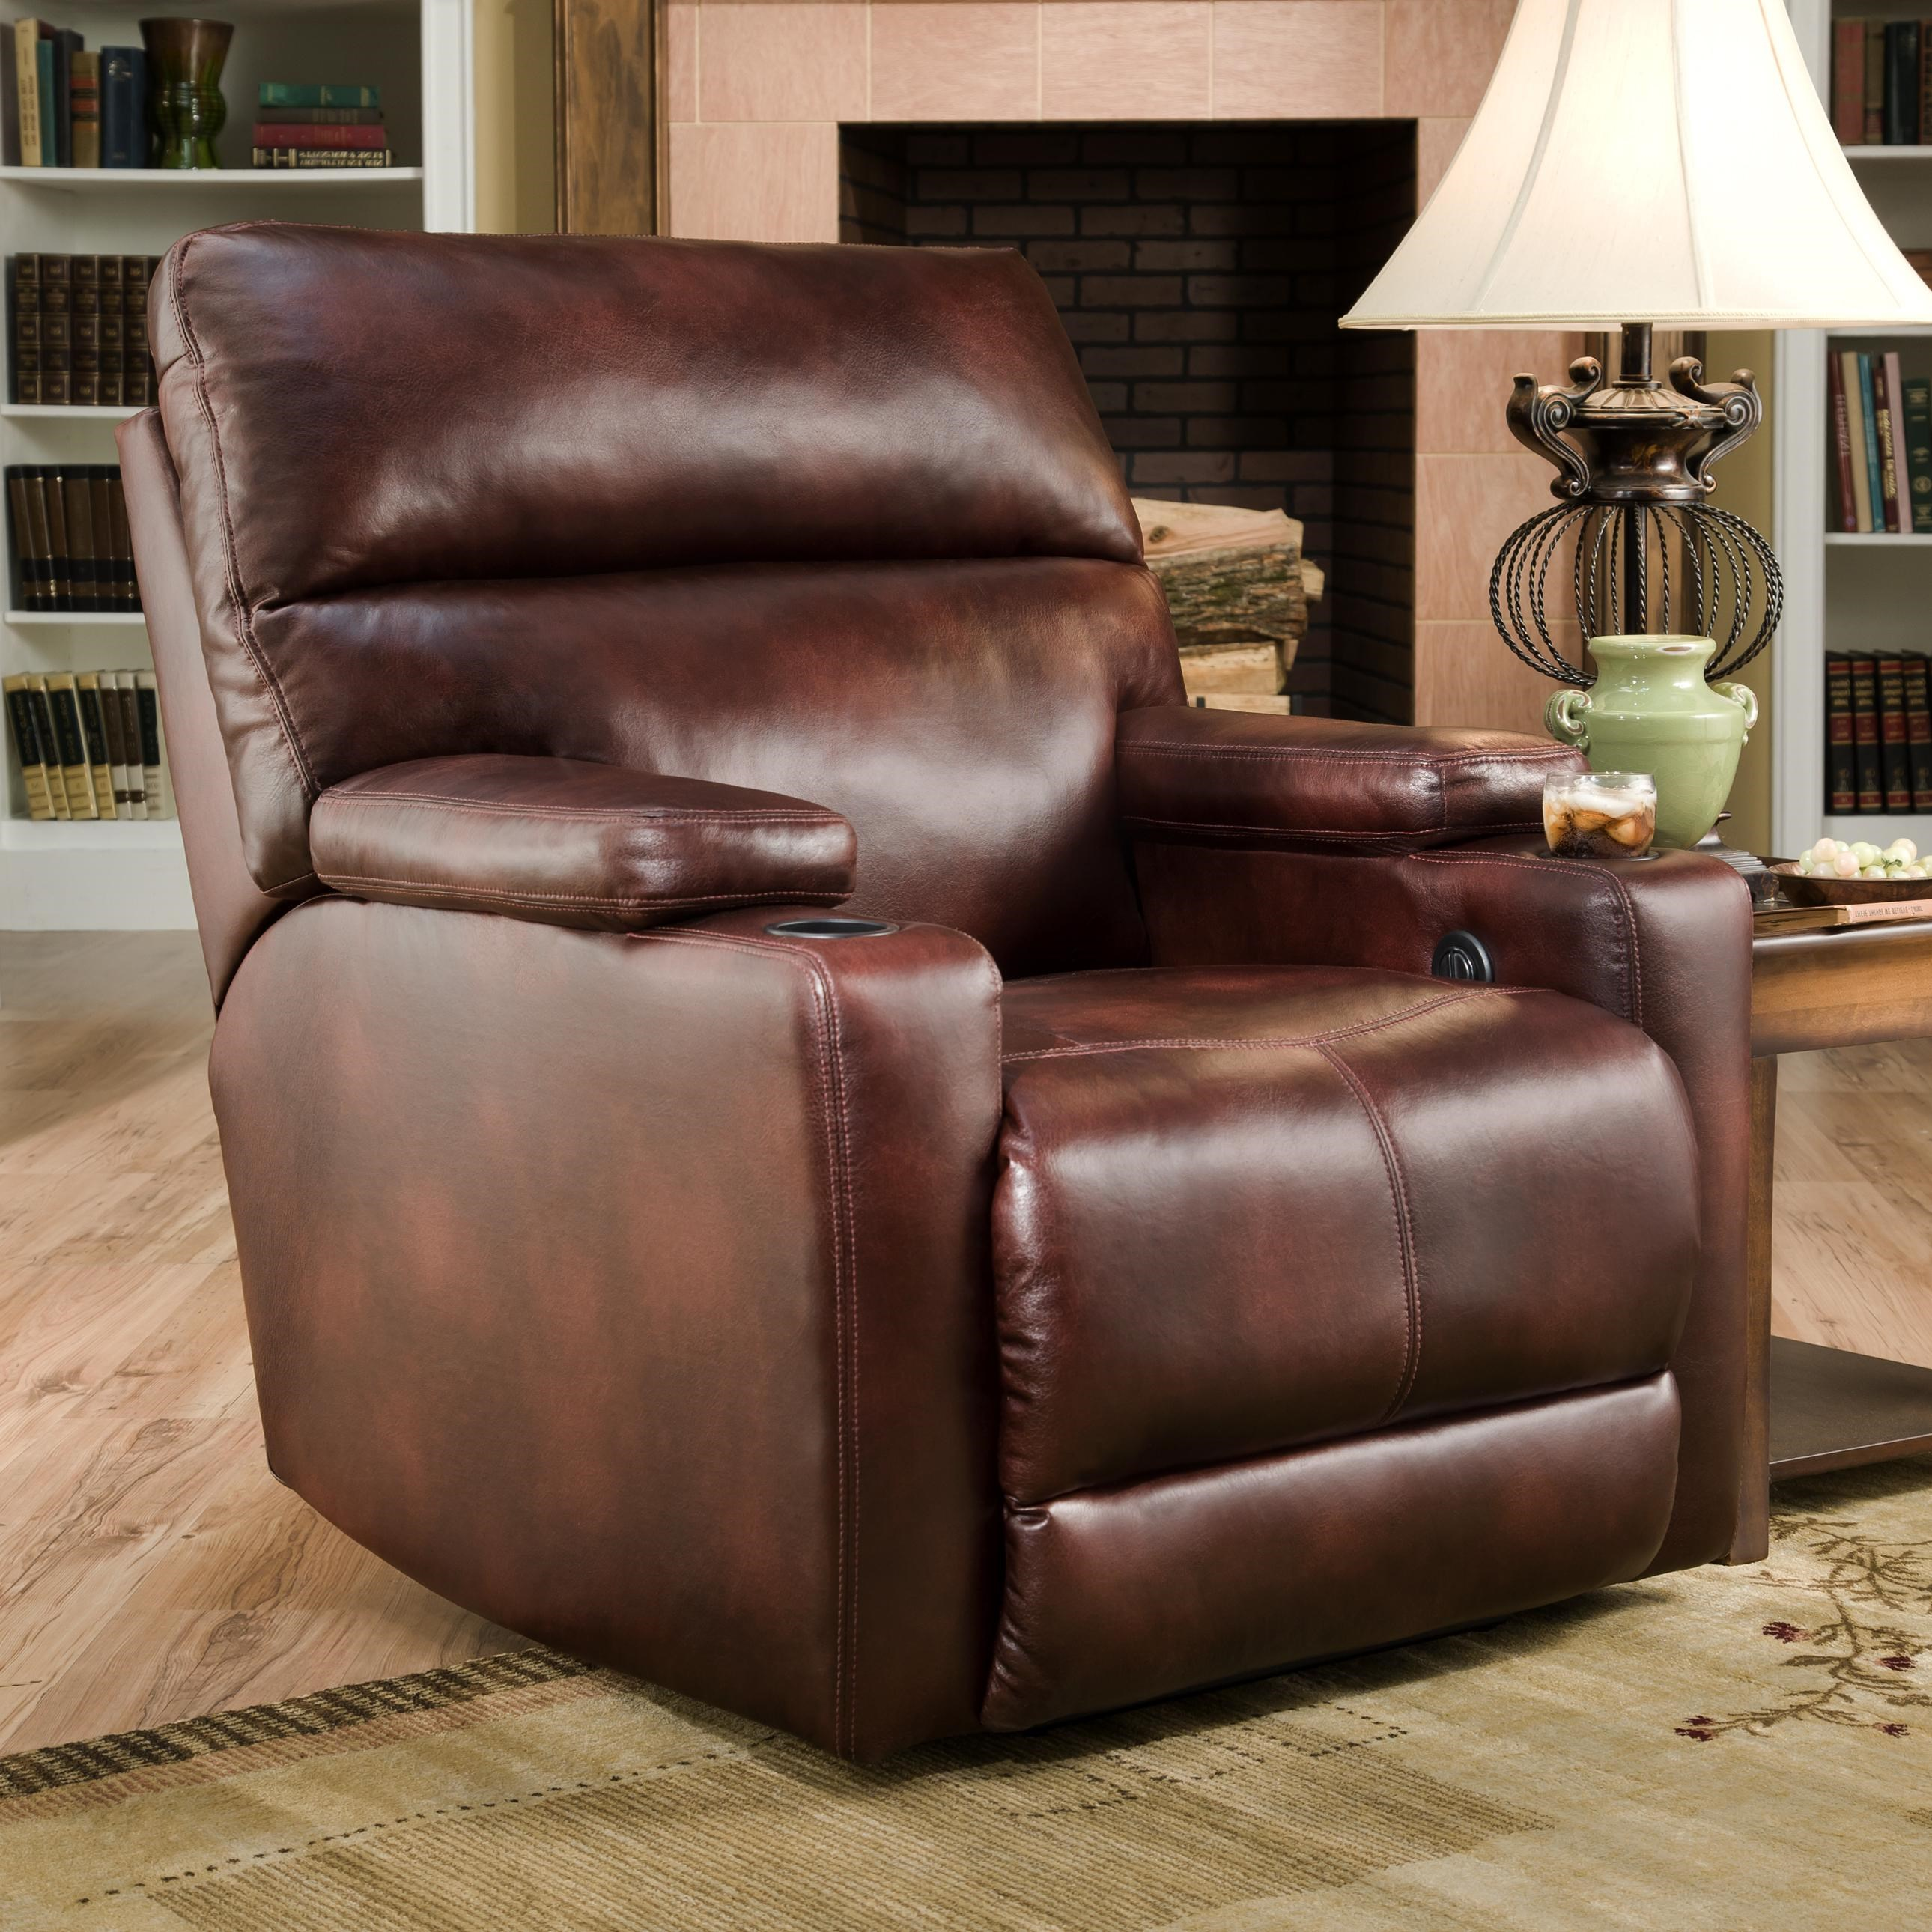 ... Recliner Shown May Not Represent Exact Features Indicated  sc 1 st  Royal Furniture & Southern Motion Recliners Tango Recliner with Contemporary Living ... islam-shia.org